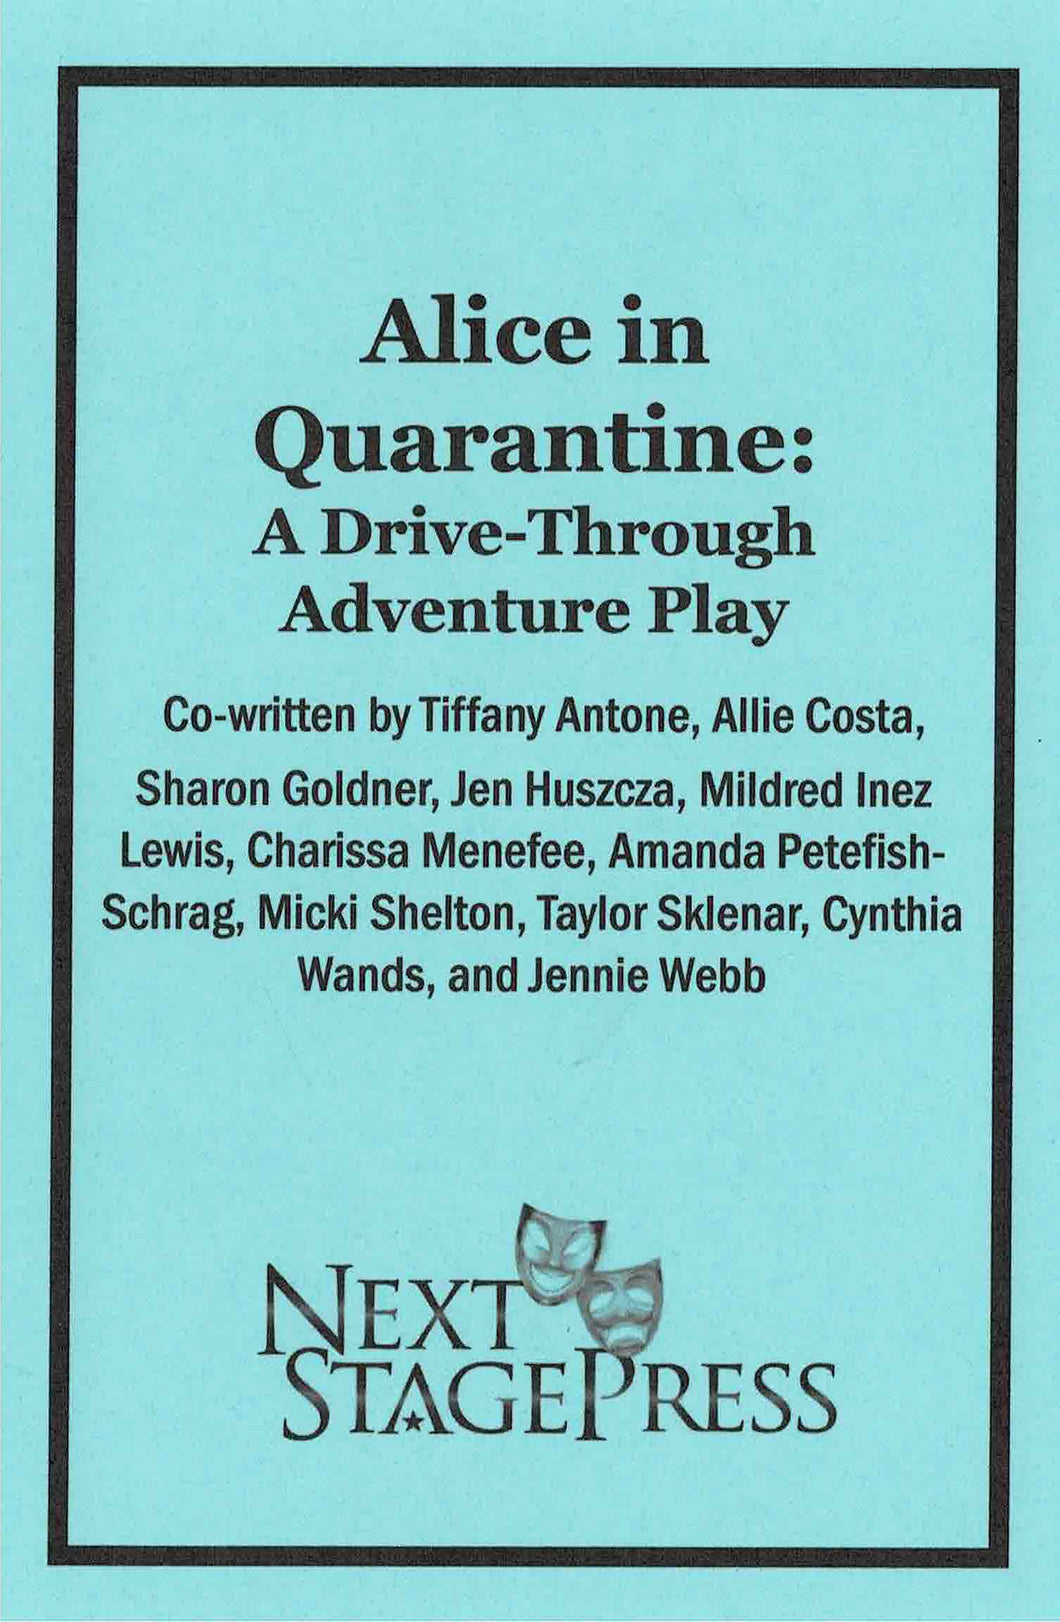 Alice in Quarantine: A Drive-Through Adventure Play